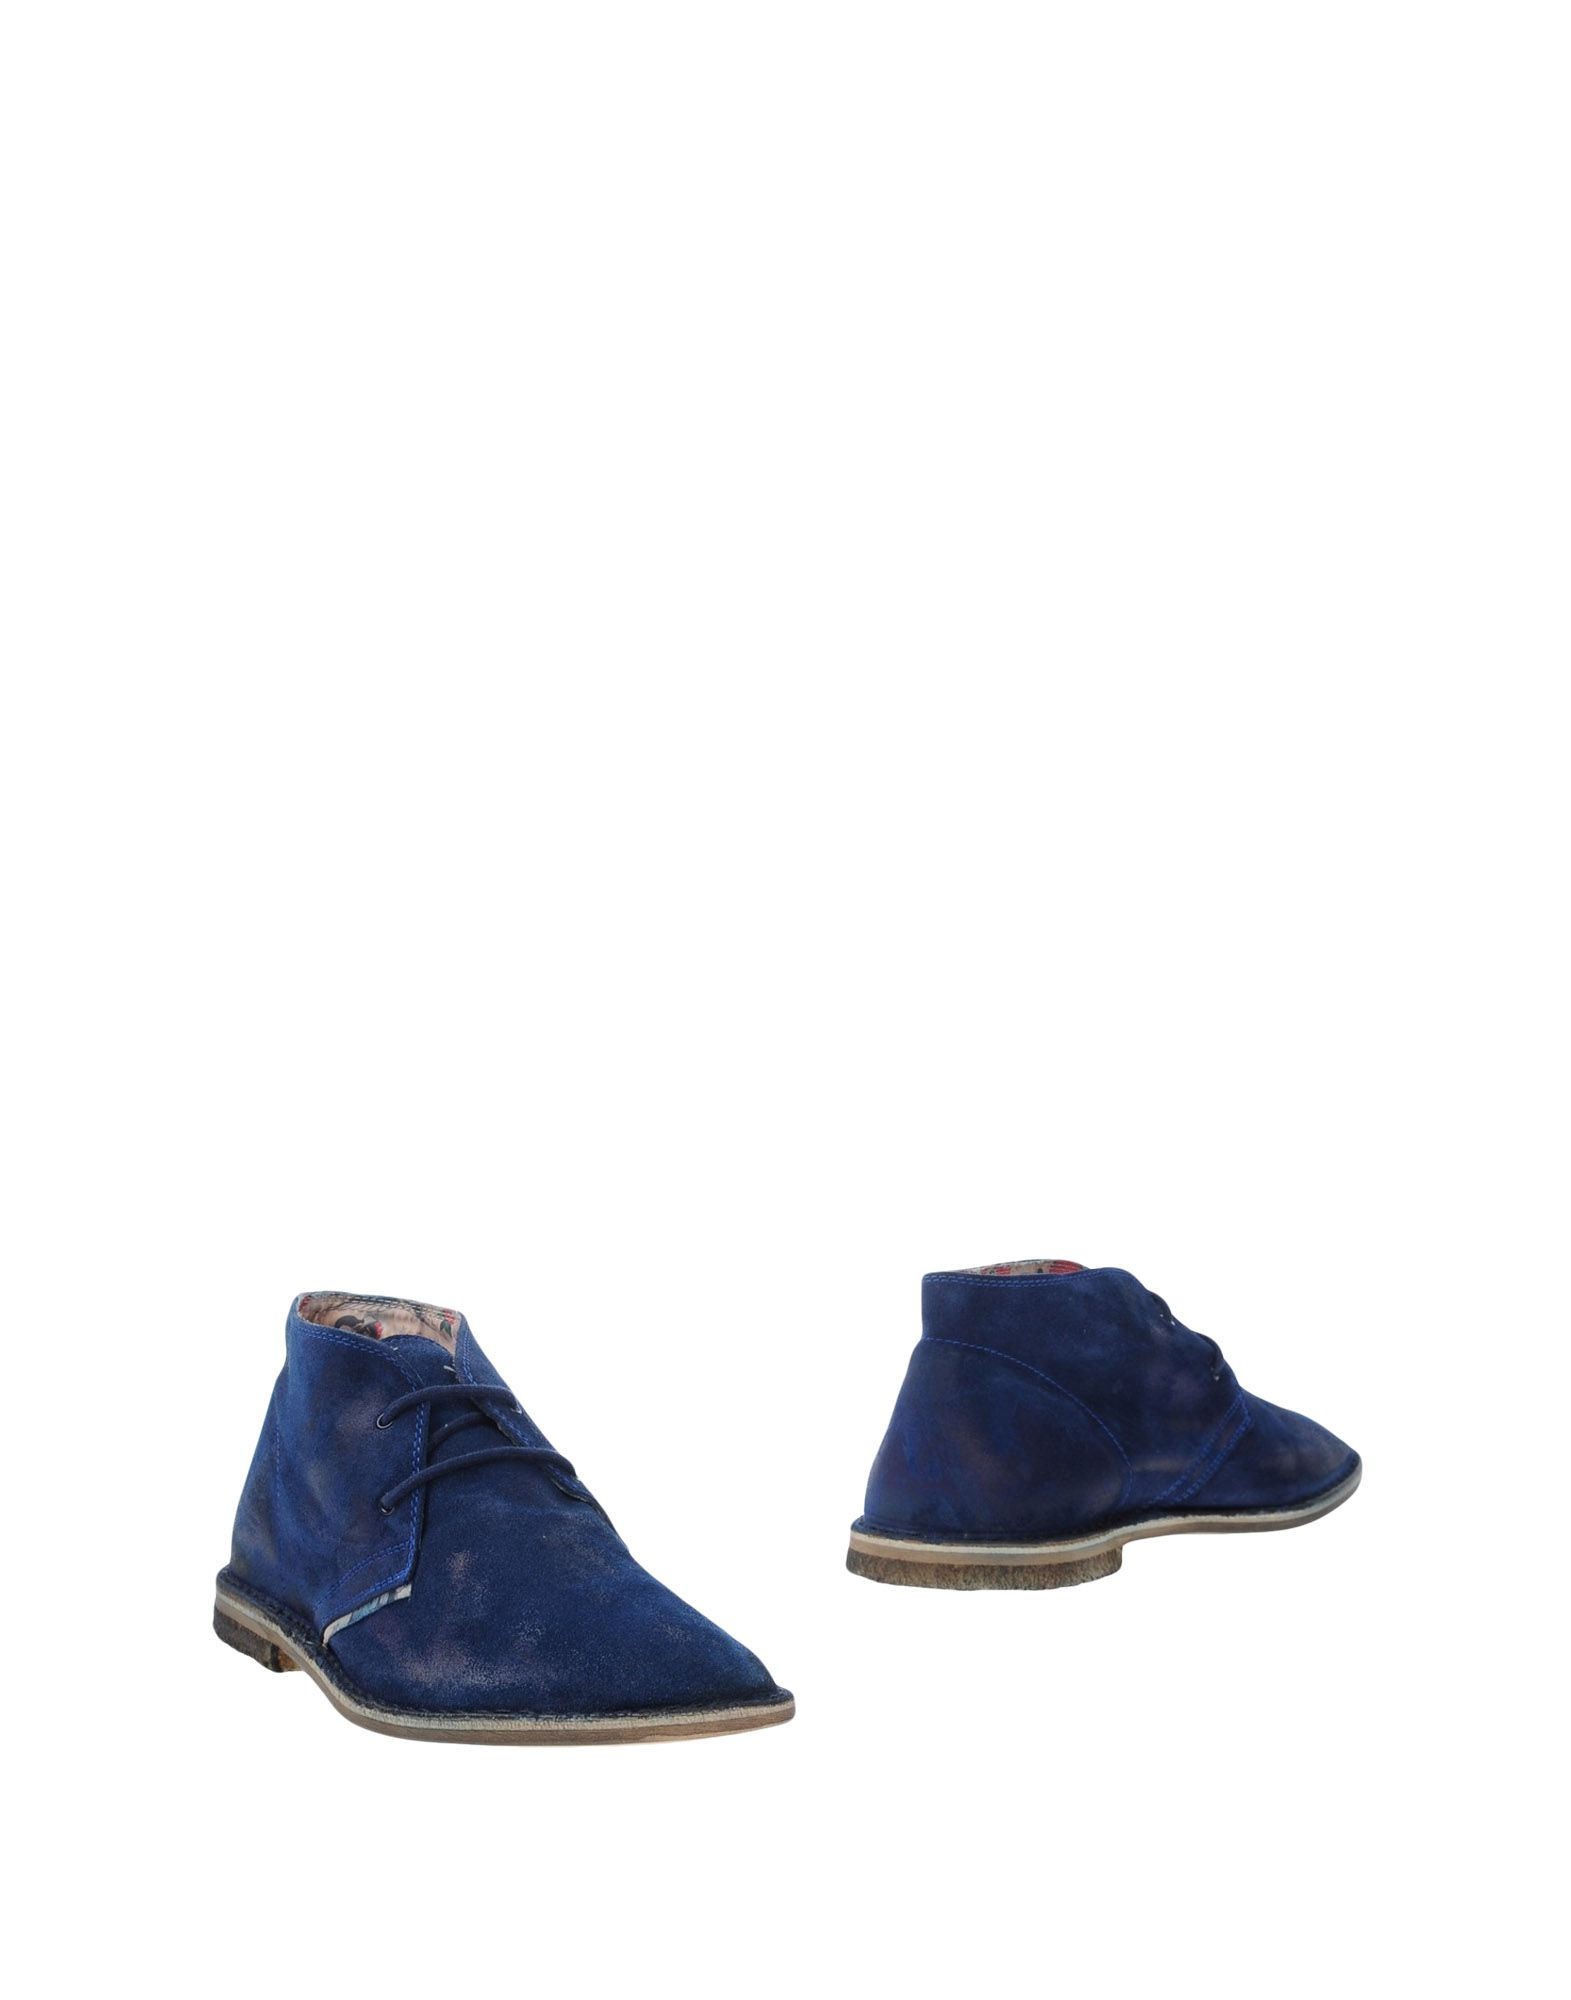 LE CROWN Boots in Blue